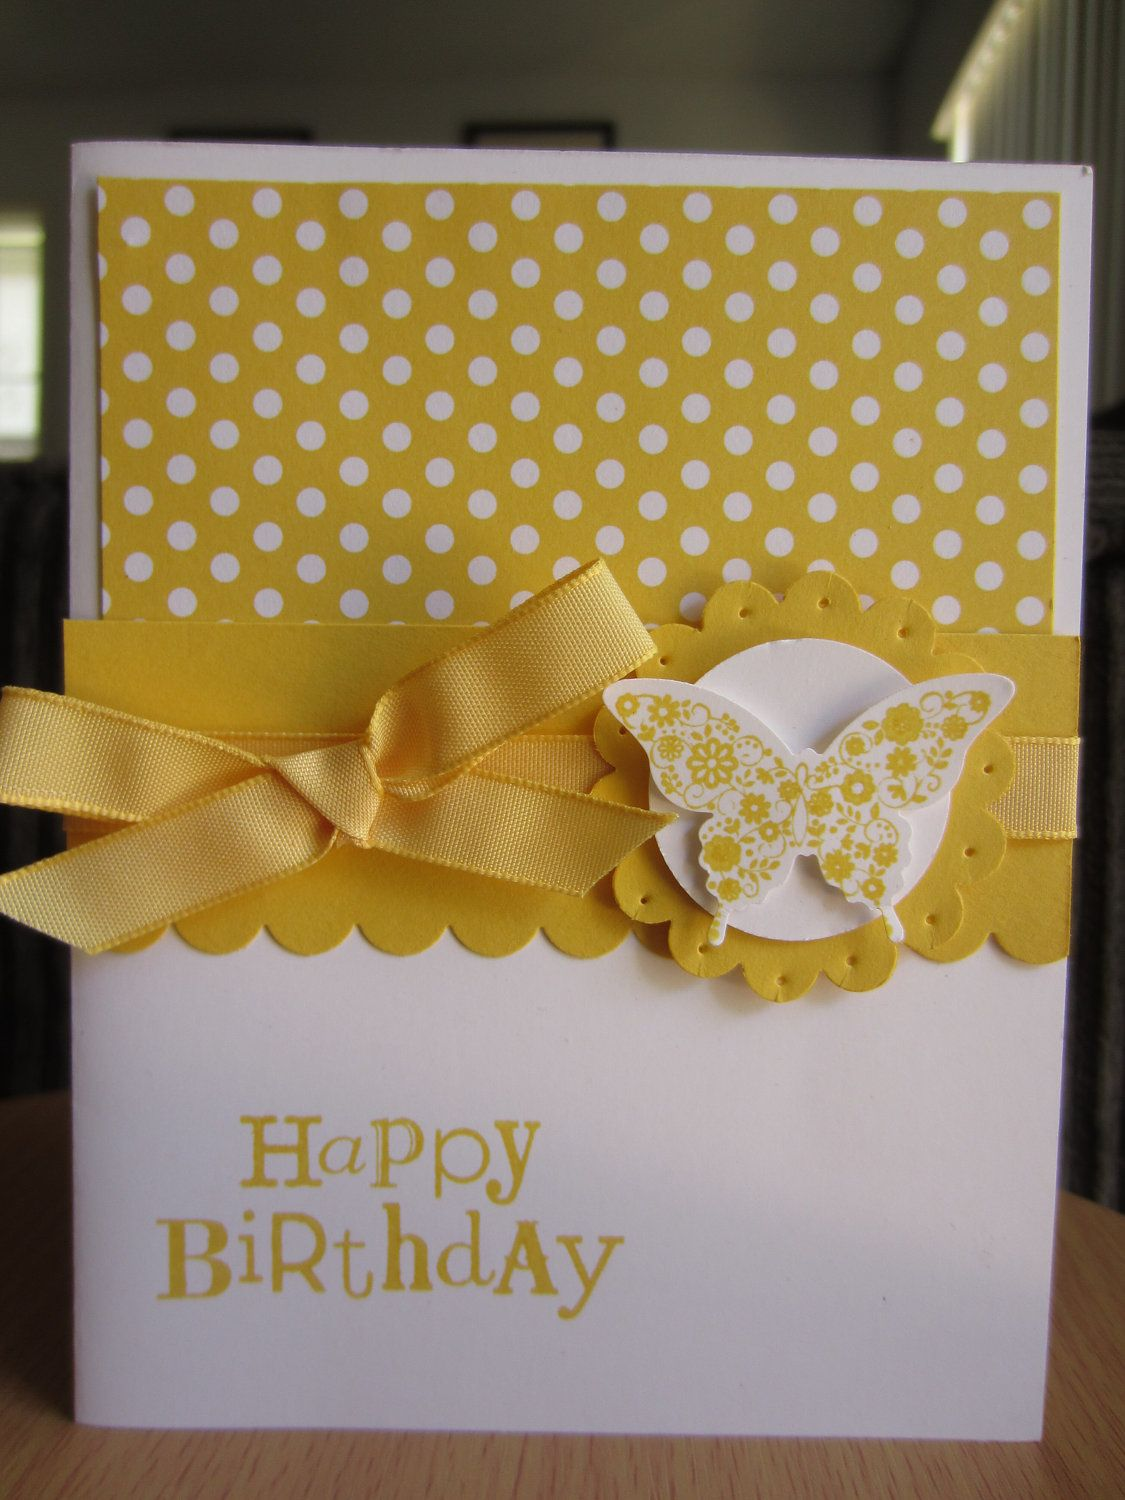 Stampinu up happy birthday butterfly cards i like pinterest